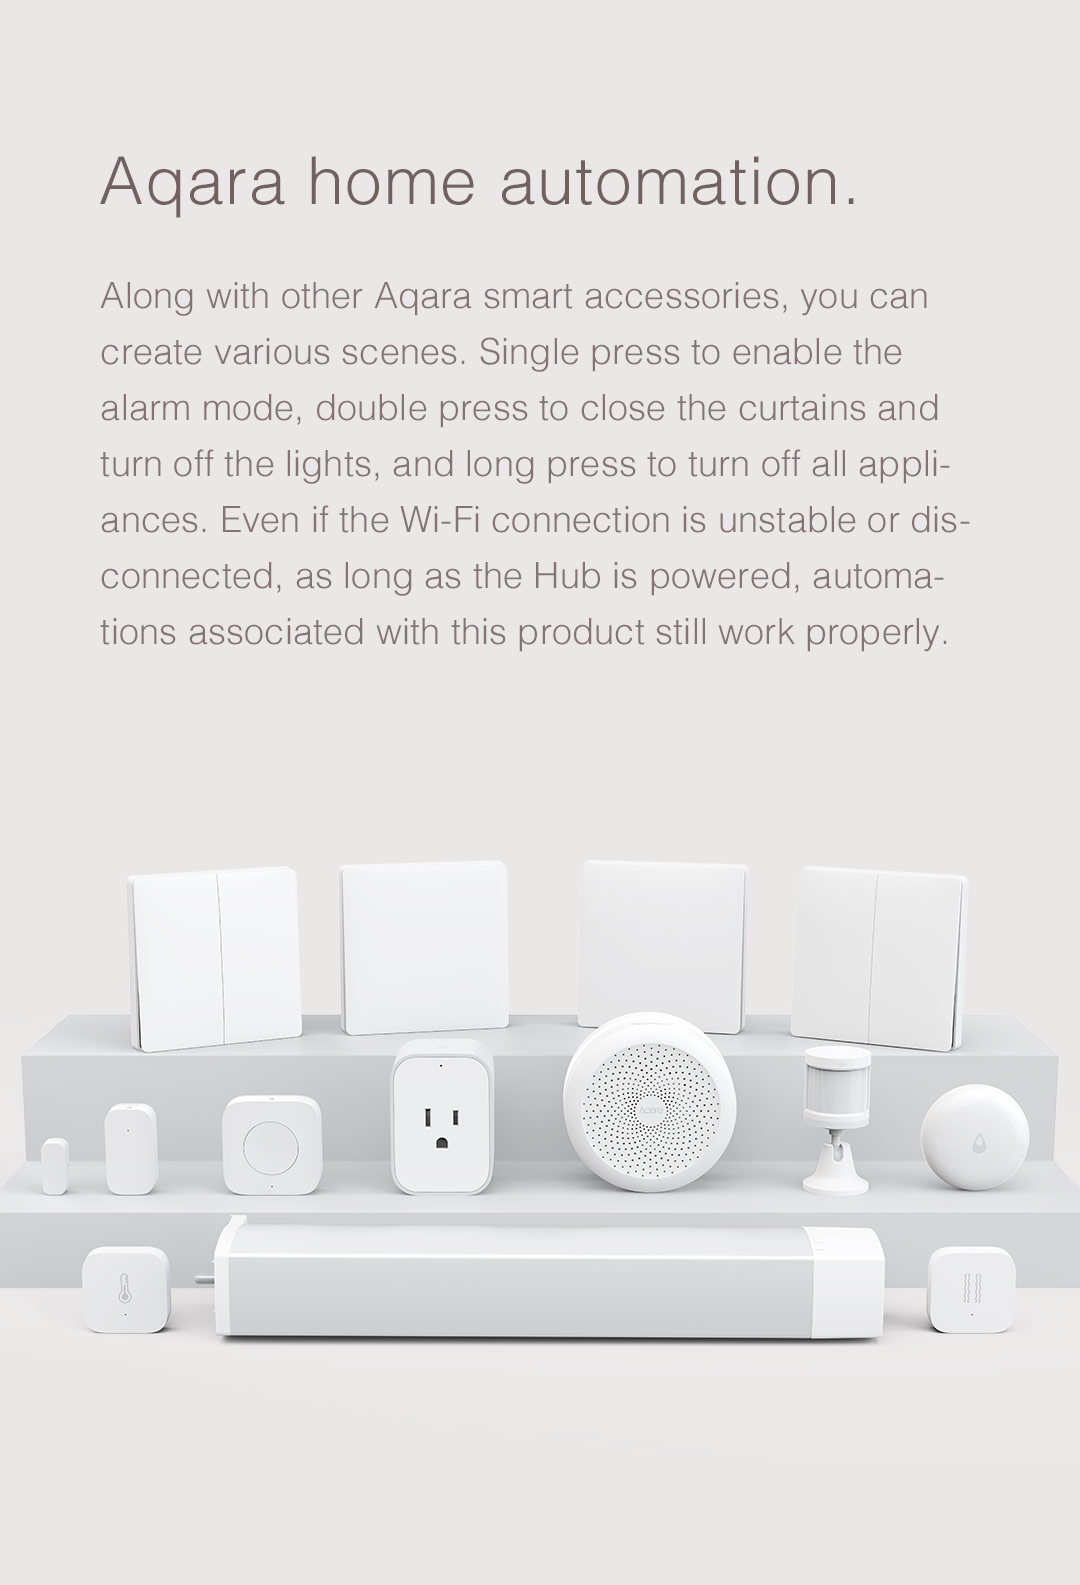 Aqara home automation products